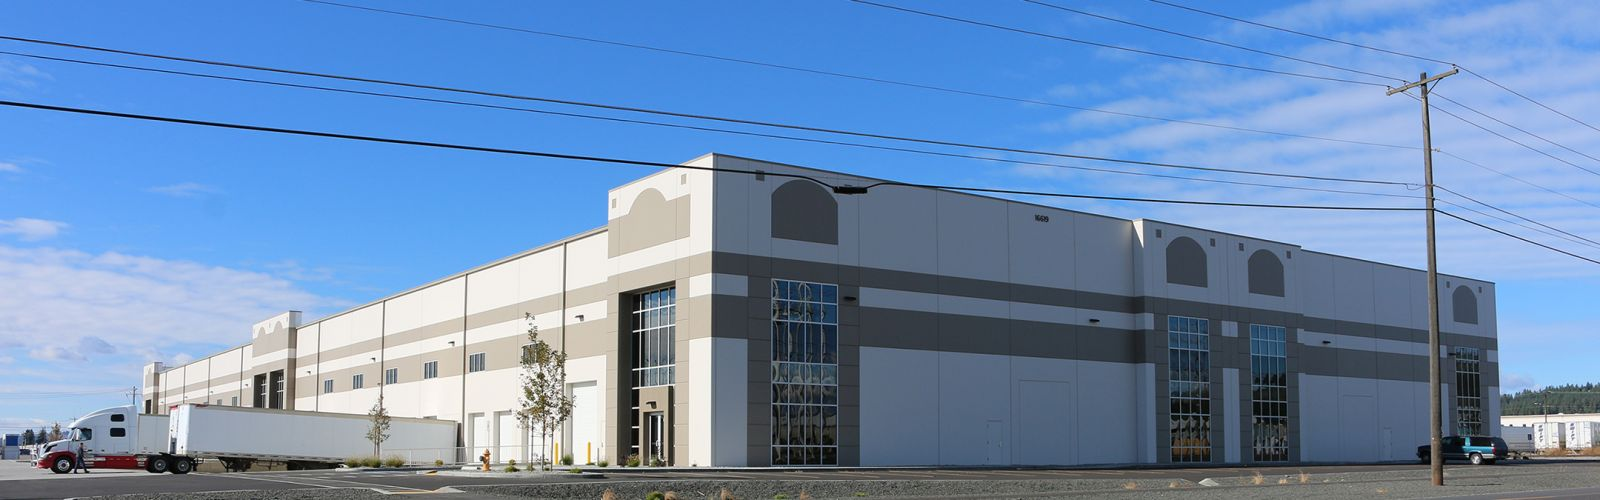 Euclid Logistics Center moving forward with second phase expansion